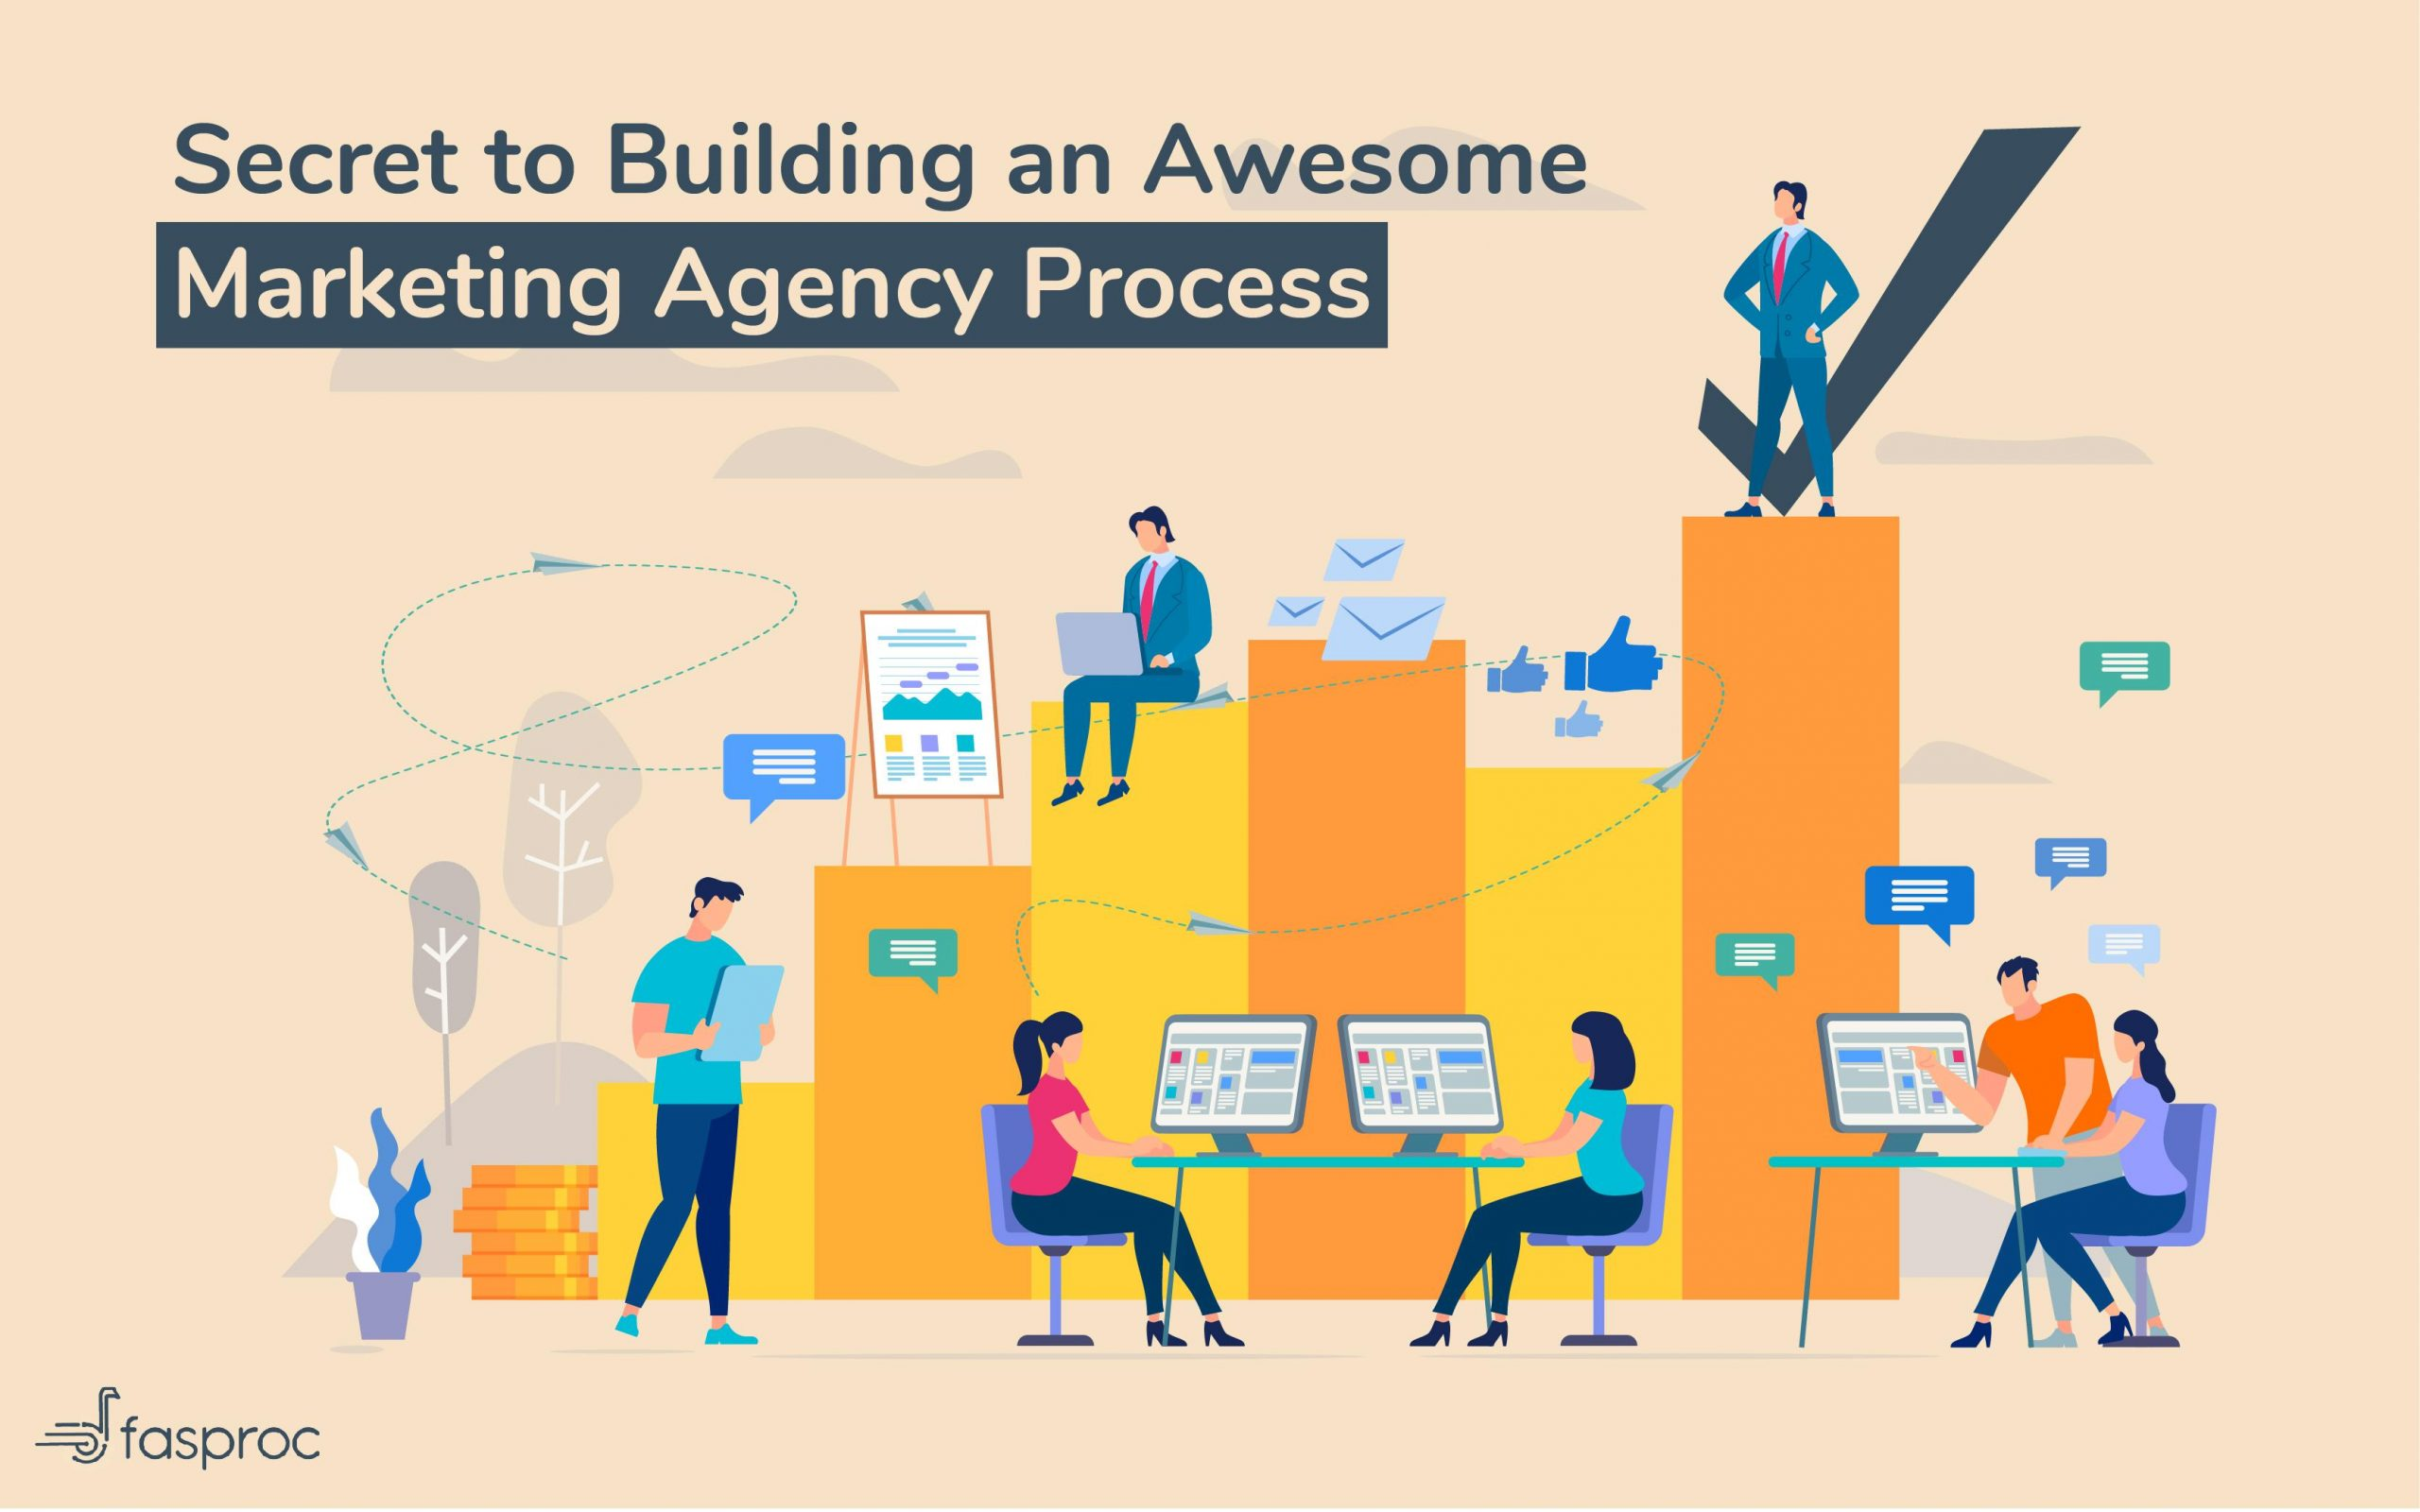 How to create marketing agency process